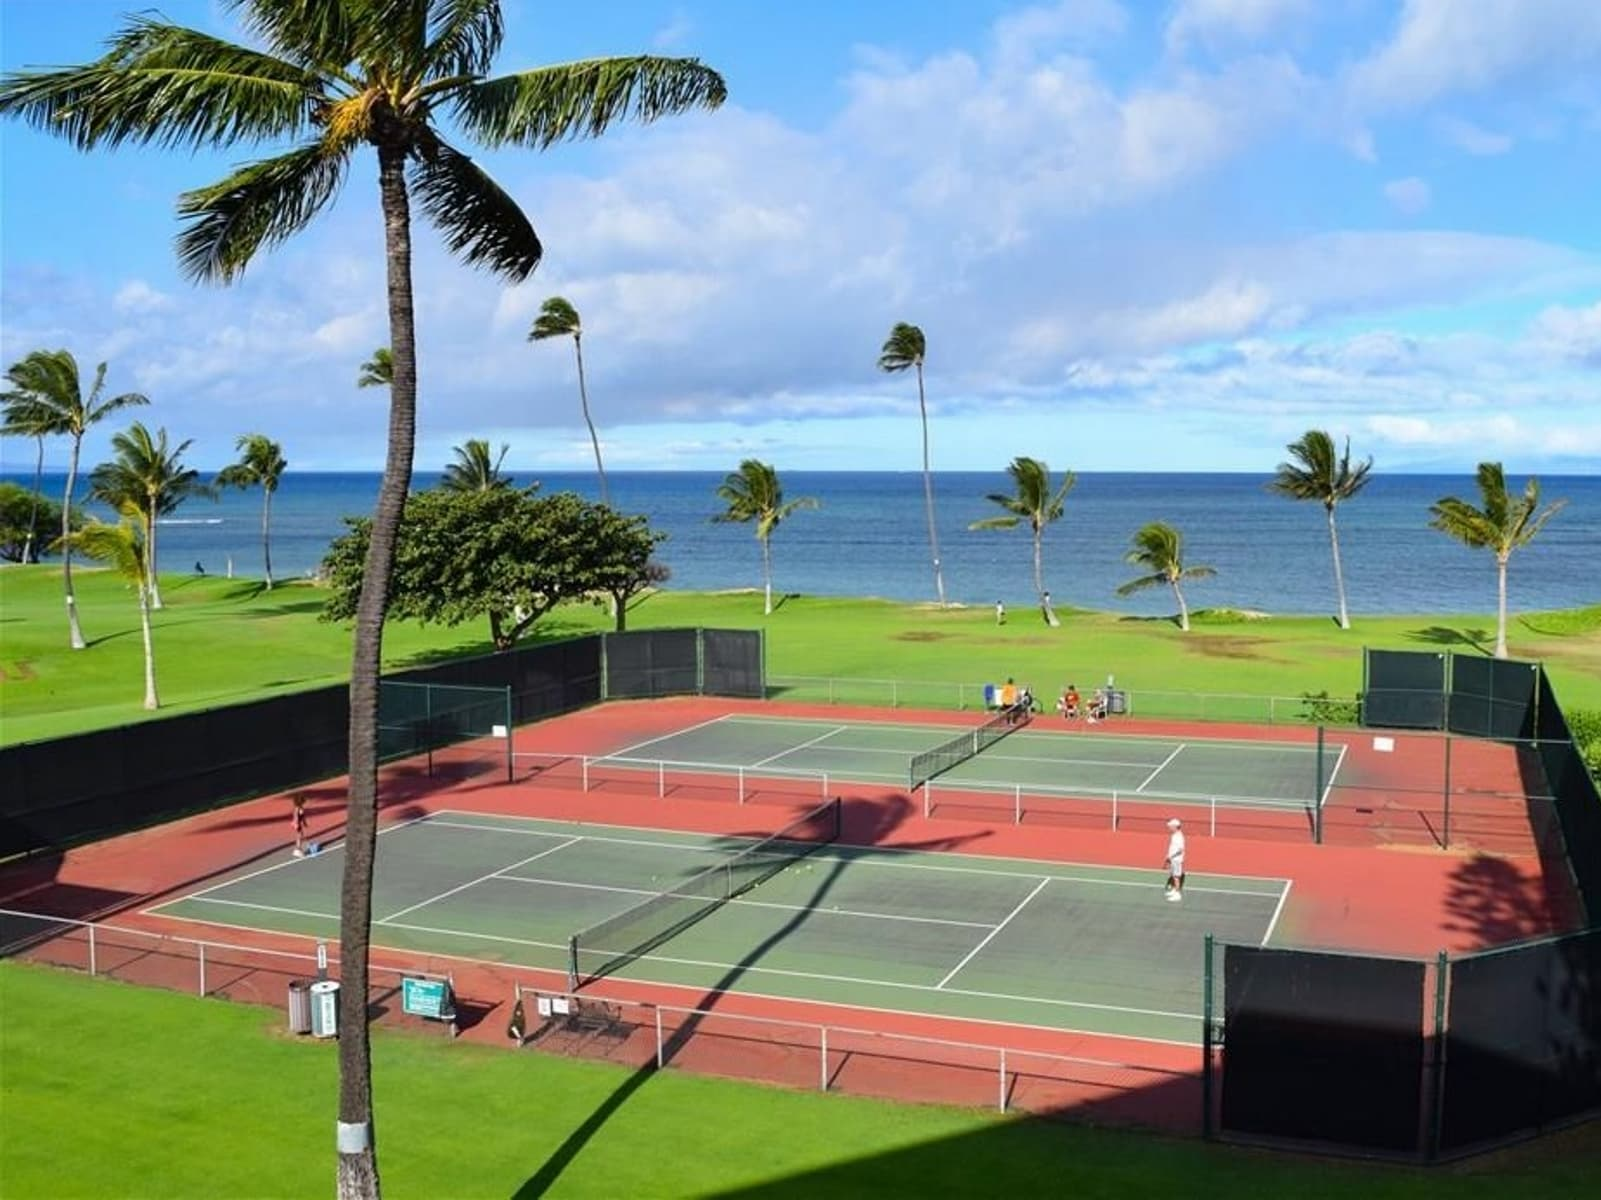 Maui Sunset - one of the best tennis resorts for your tennis holidays in Hawaii